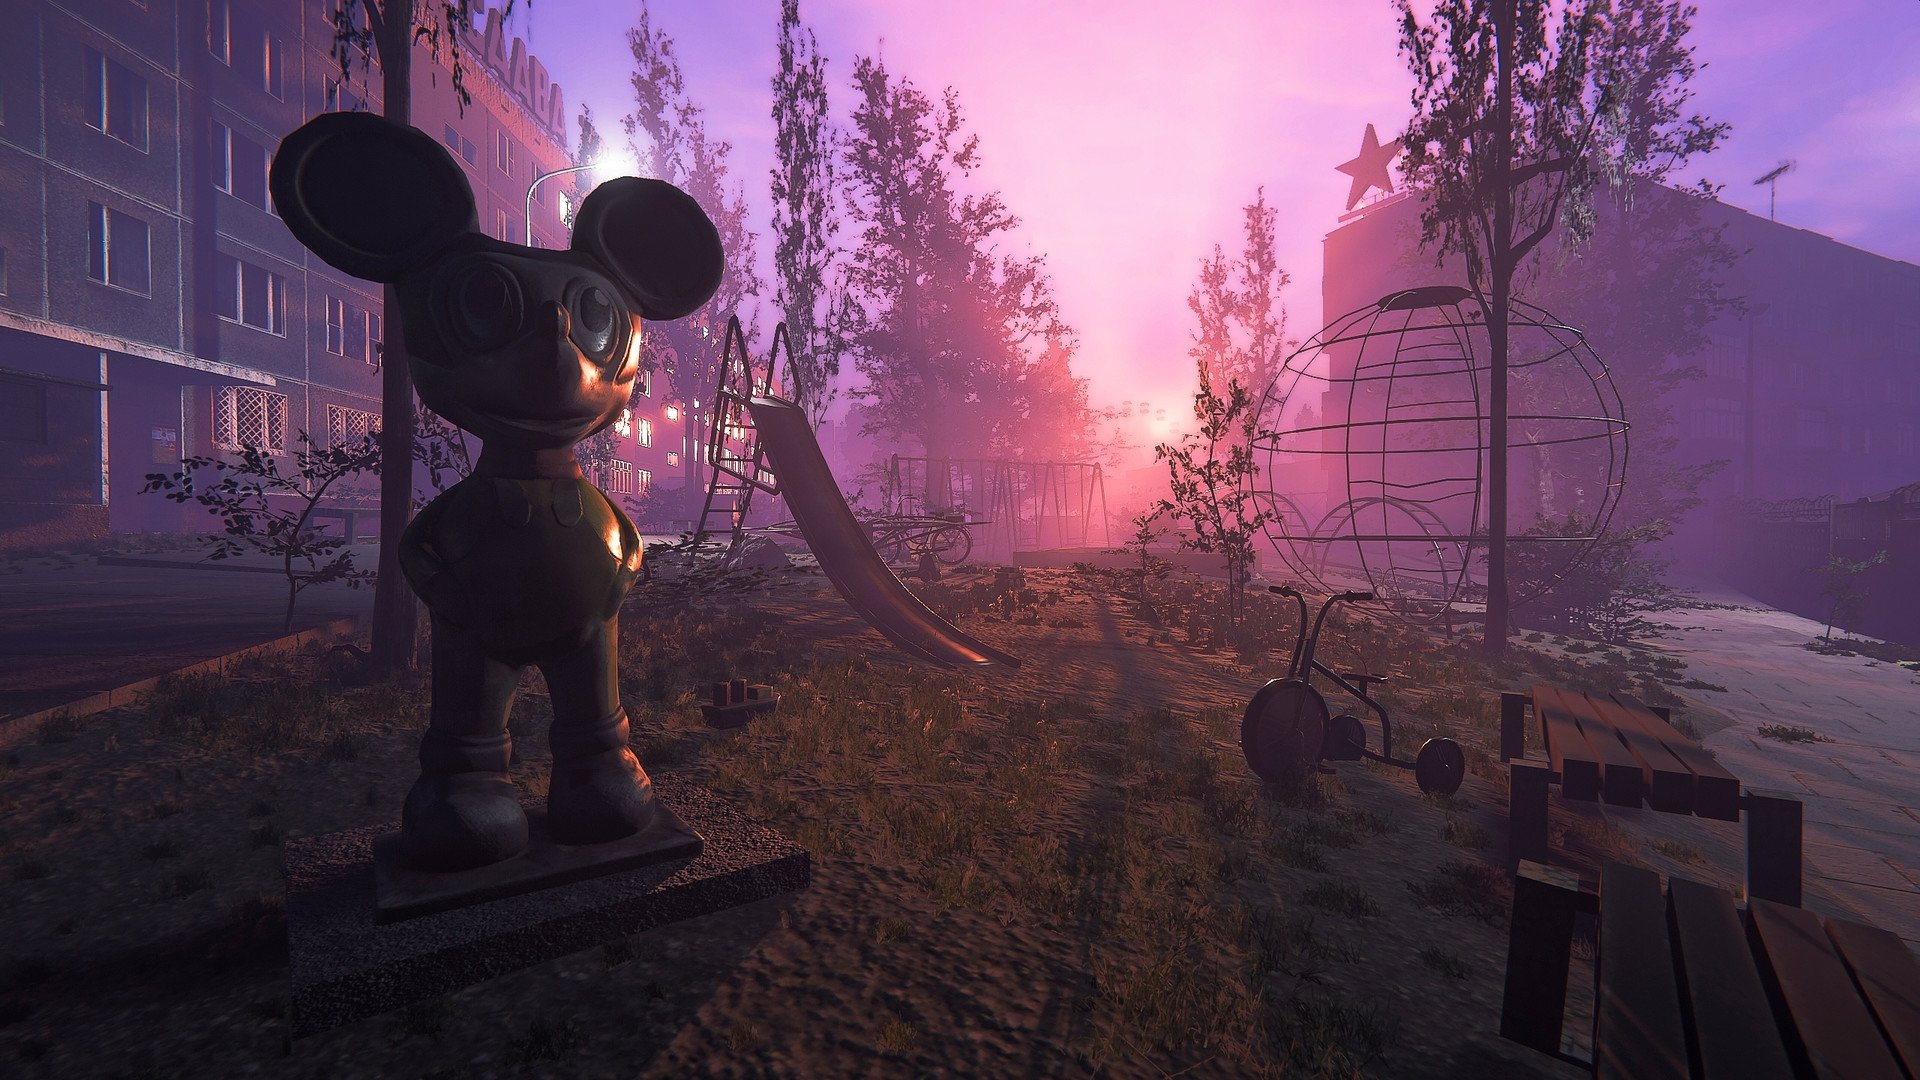 Chernobyl Liquidators Simulator Aims To Be A Realistic Chernobyl Nuclear Disaster Game